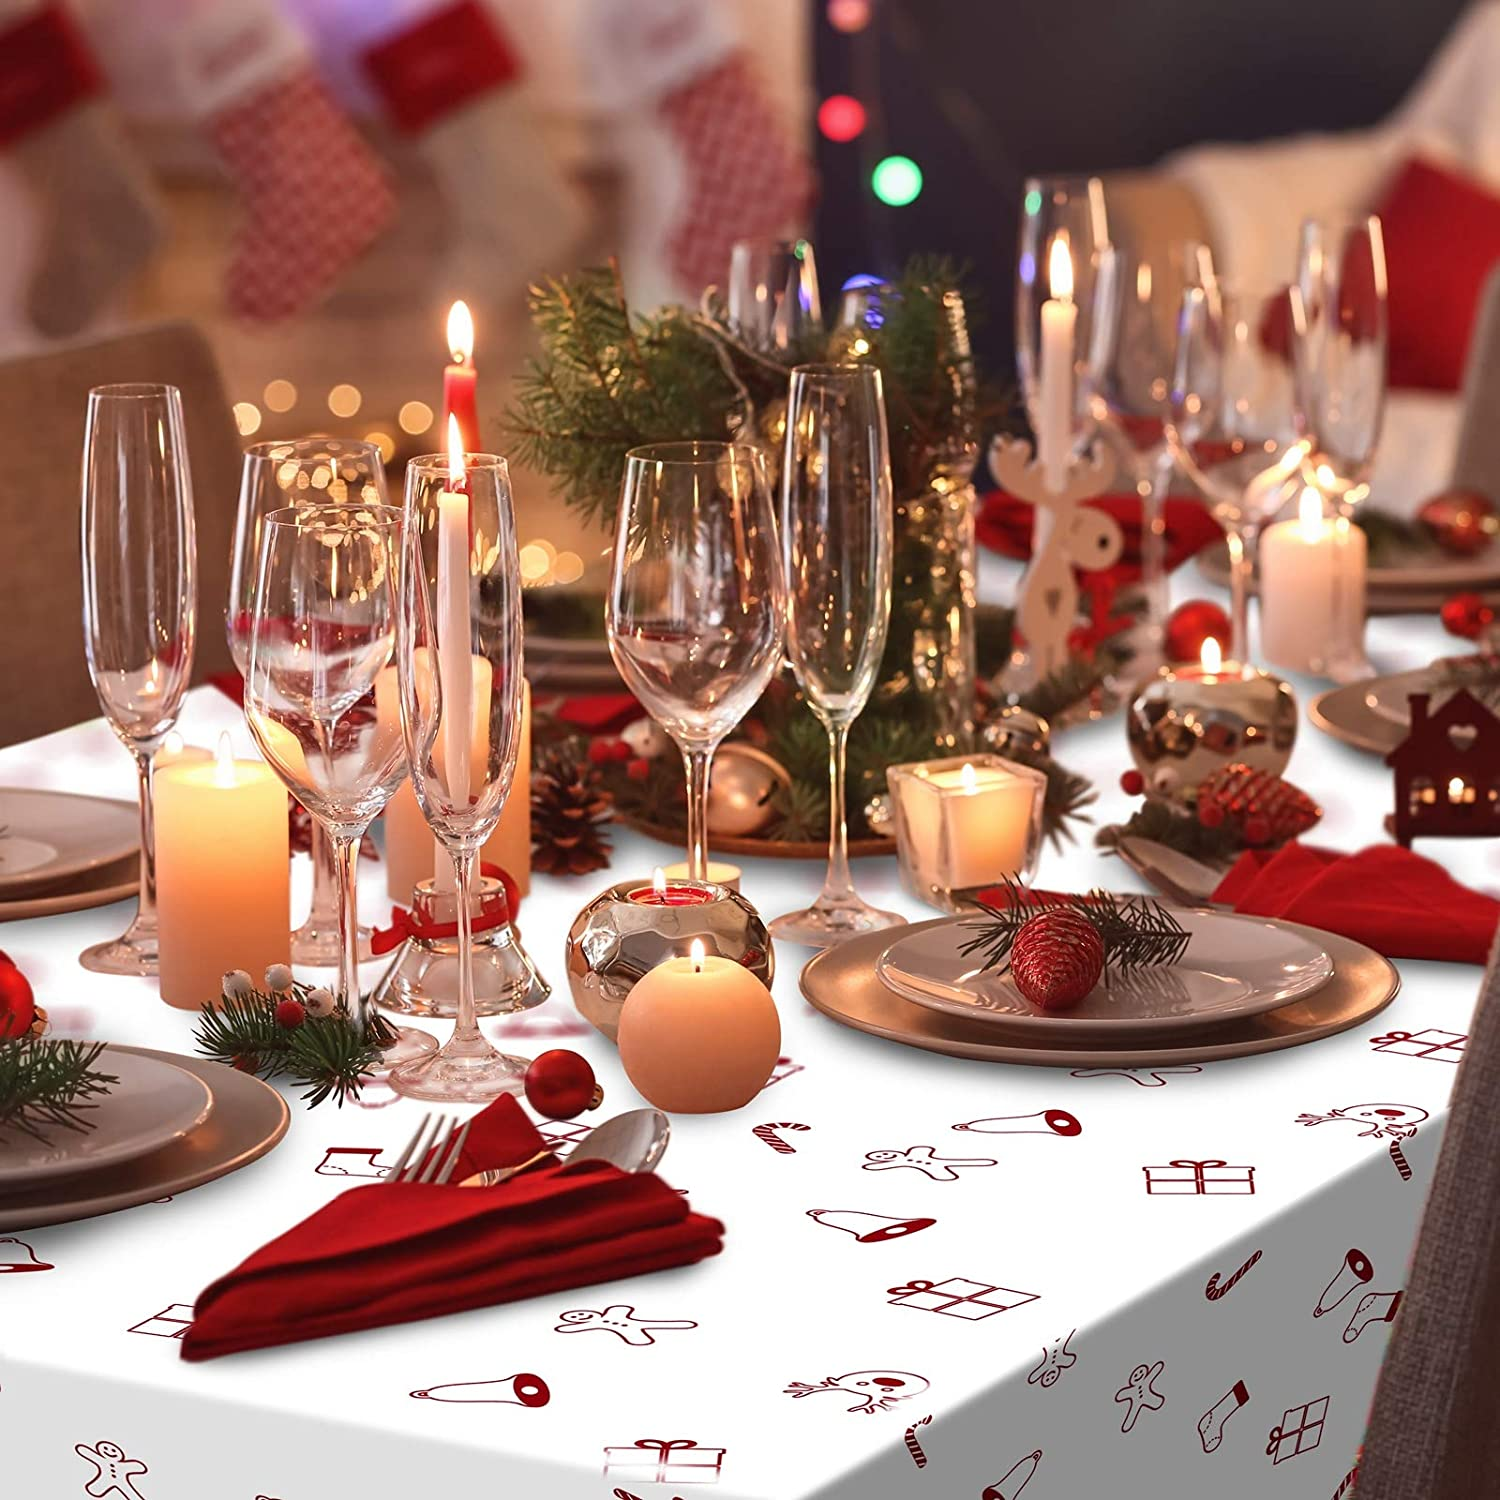 Aneco 2 Pack Christmas Party Tablecloth Table Cover Christmas Flower Disposable Tablecloth Table Cover 54 x 108 Inches for Christmas Party Decoration Supplies